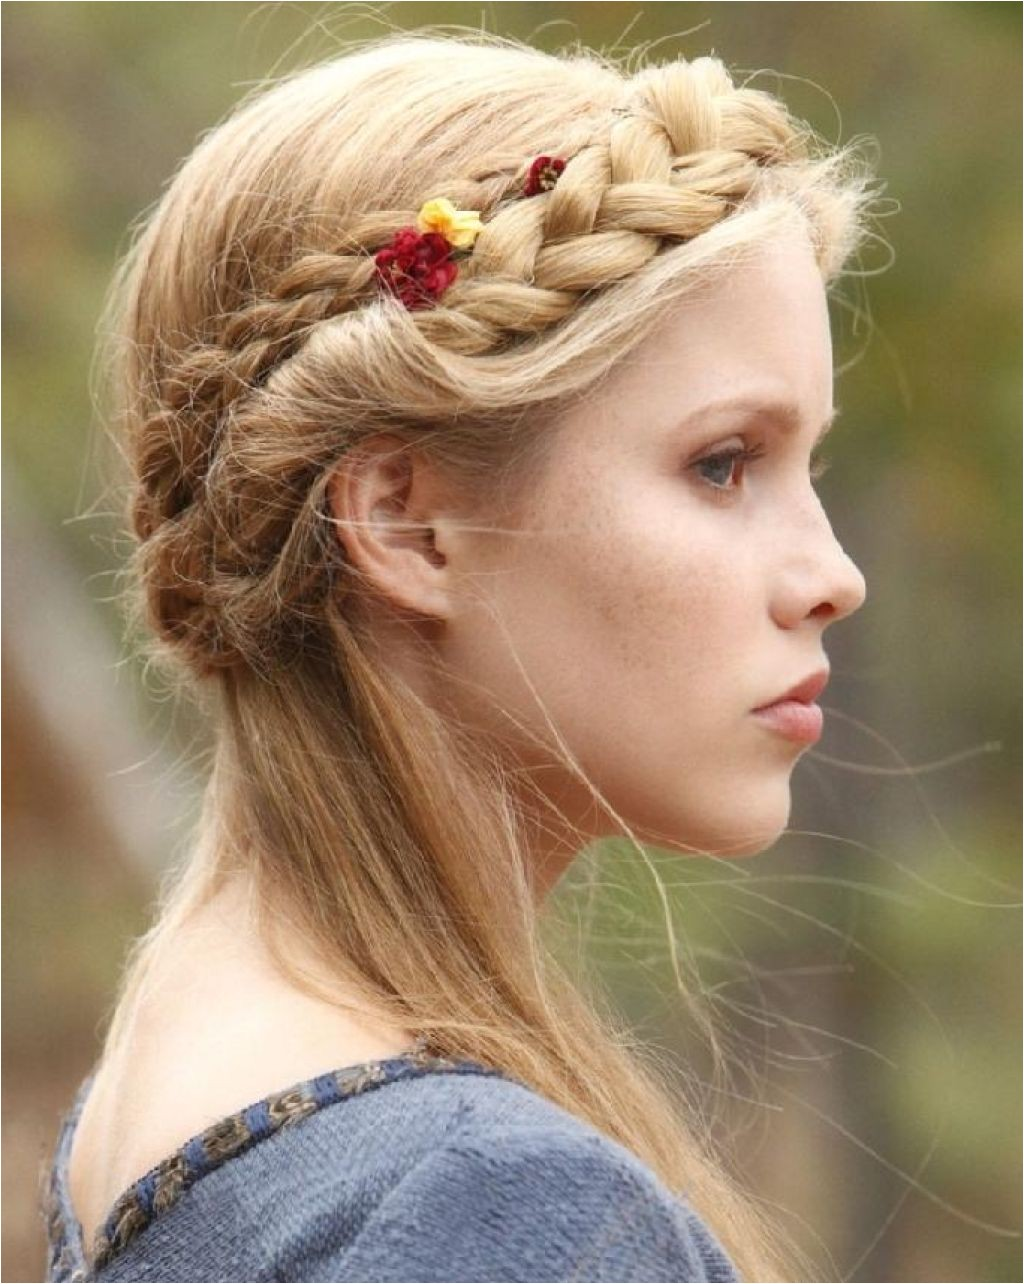 20 cute hairstyles for girls and women